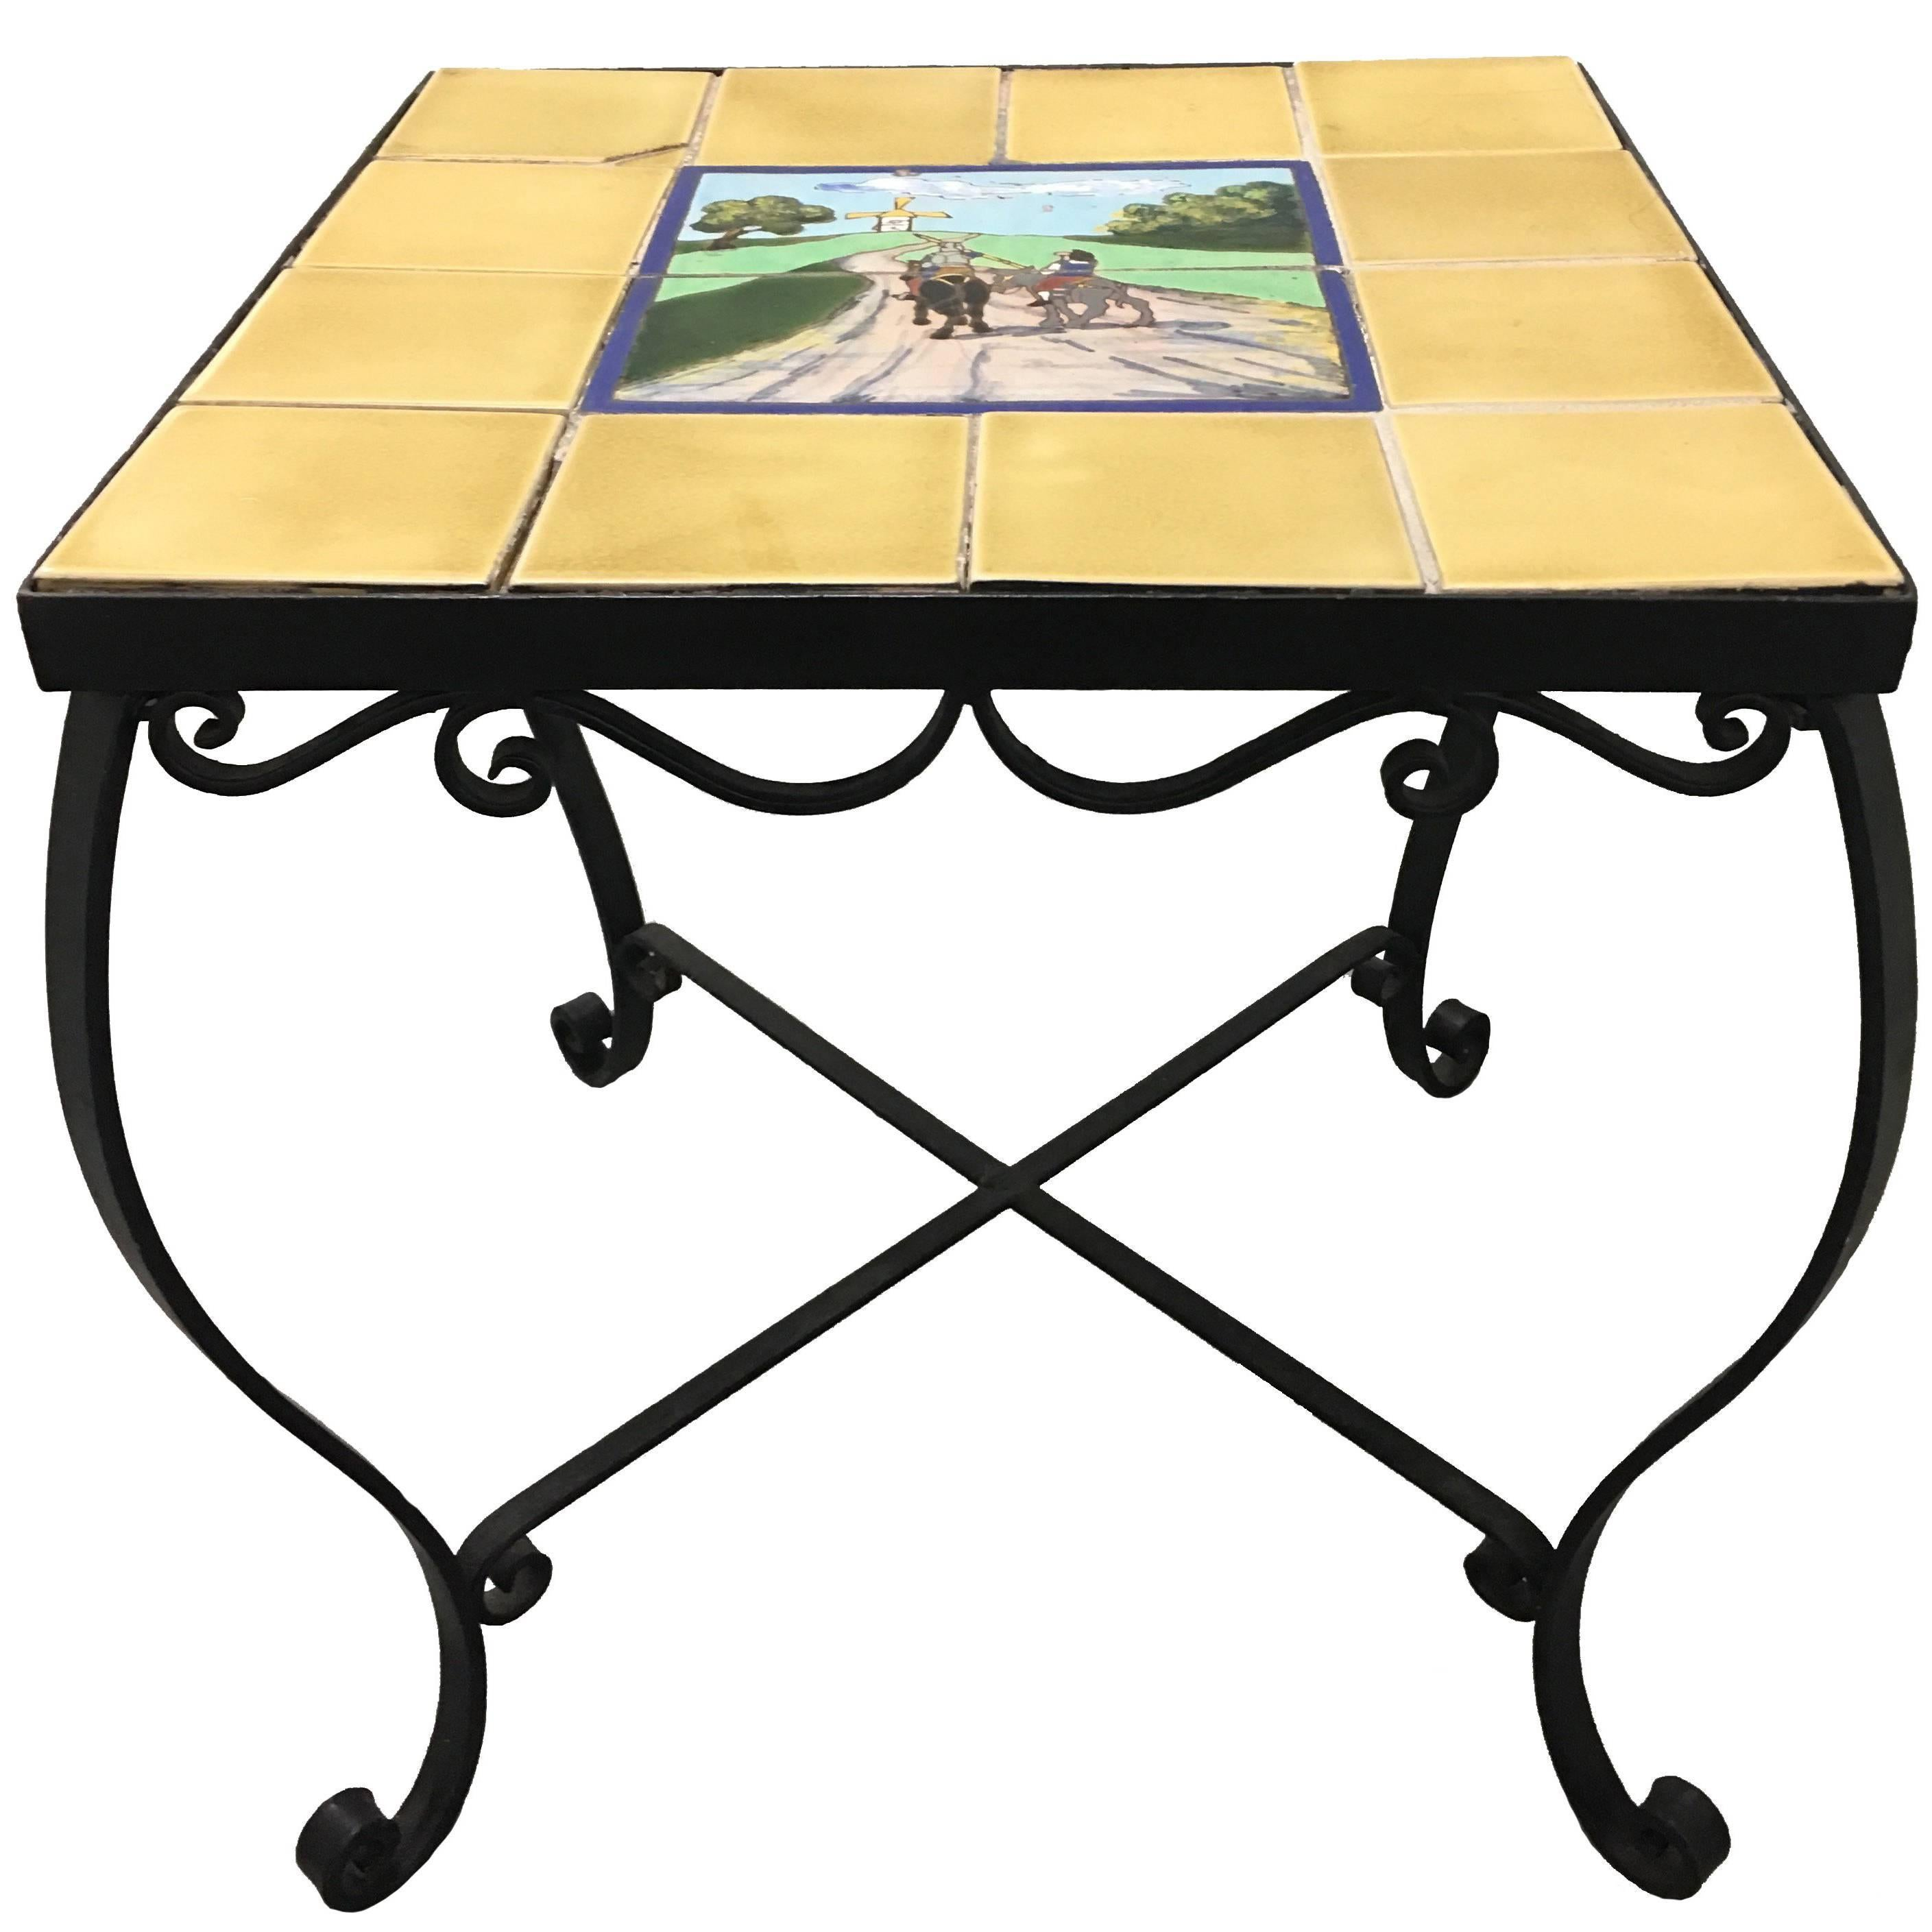 Charmant 1930s Spanish Tile Top Wrought Iron Side Table For Sale